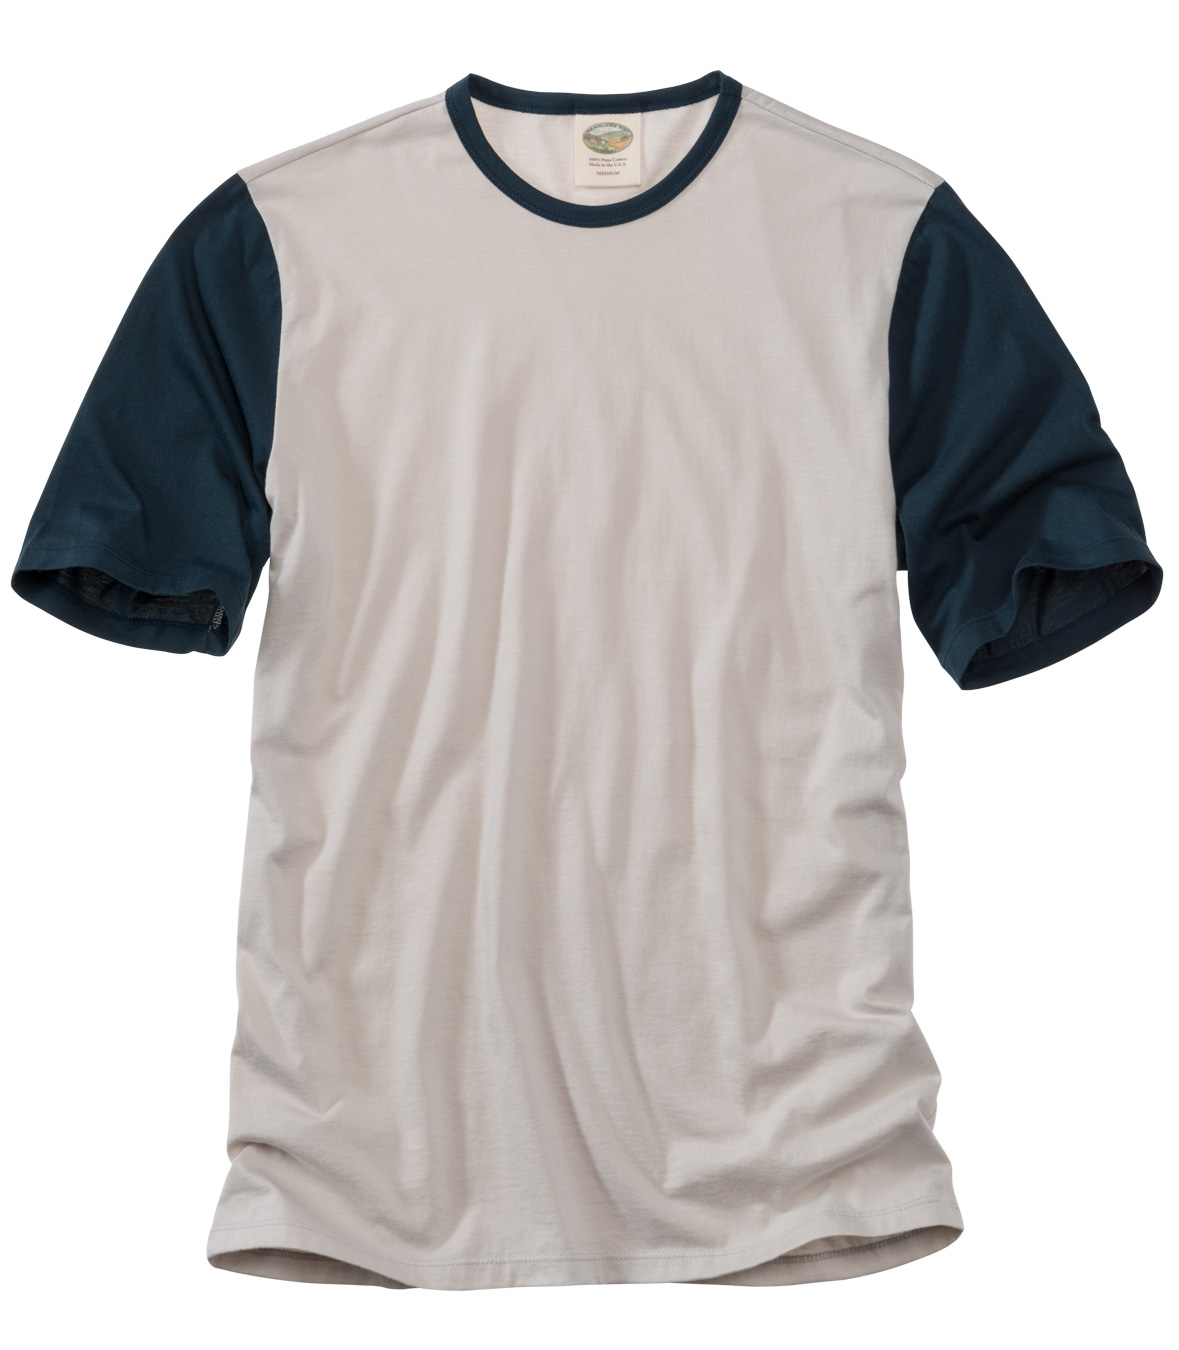 Cotton Crew Neck Tee - Short Sleeve Made in USA   RAMBLERS WAY